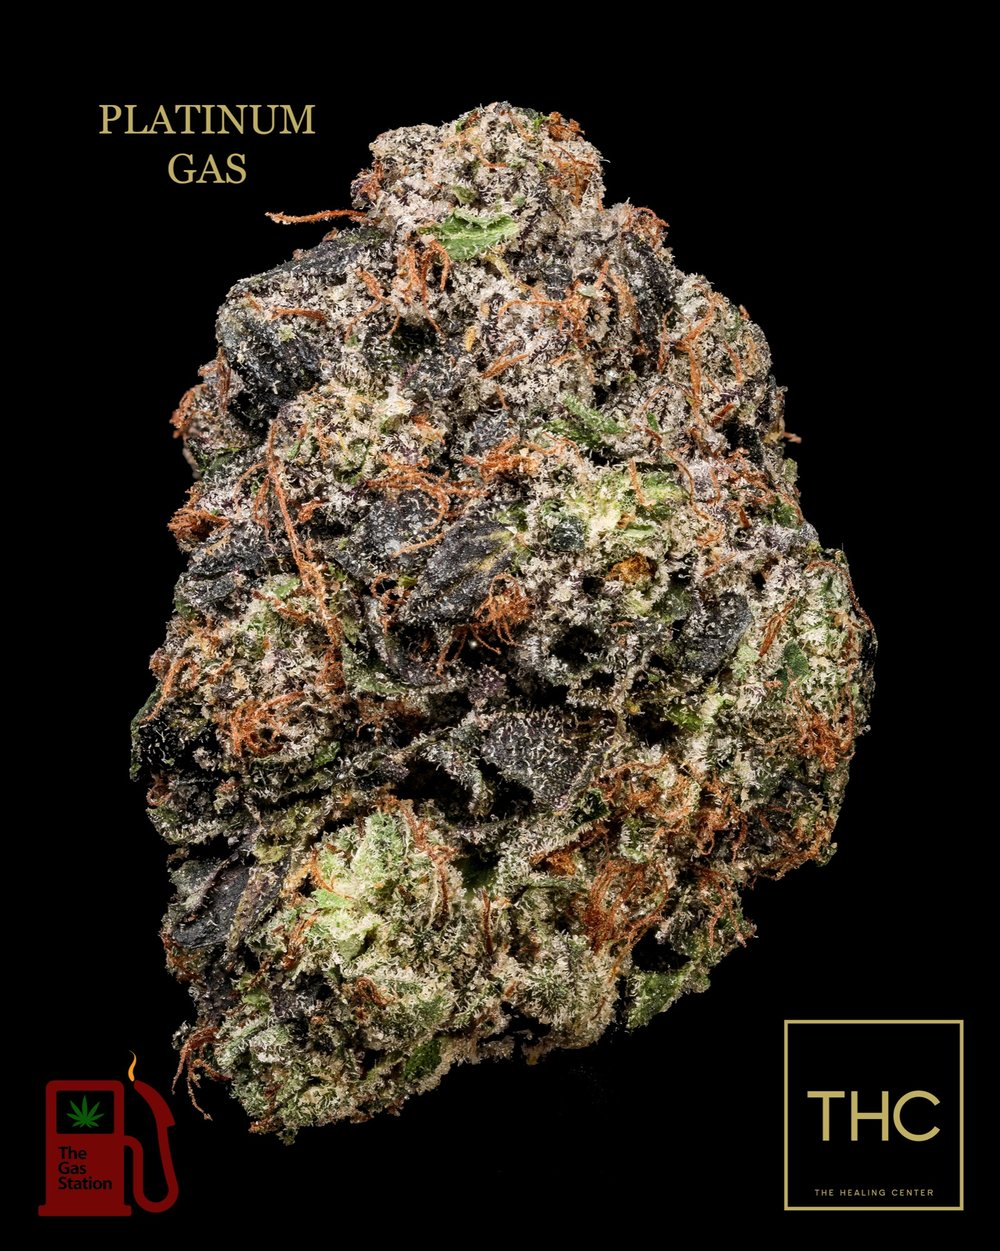 Platinum Gas The Gas Station THC.jpg